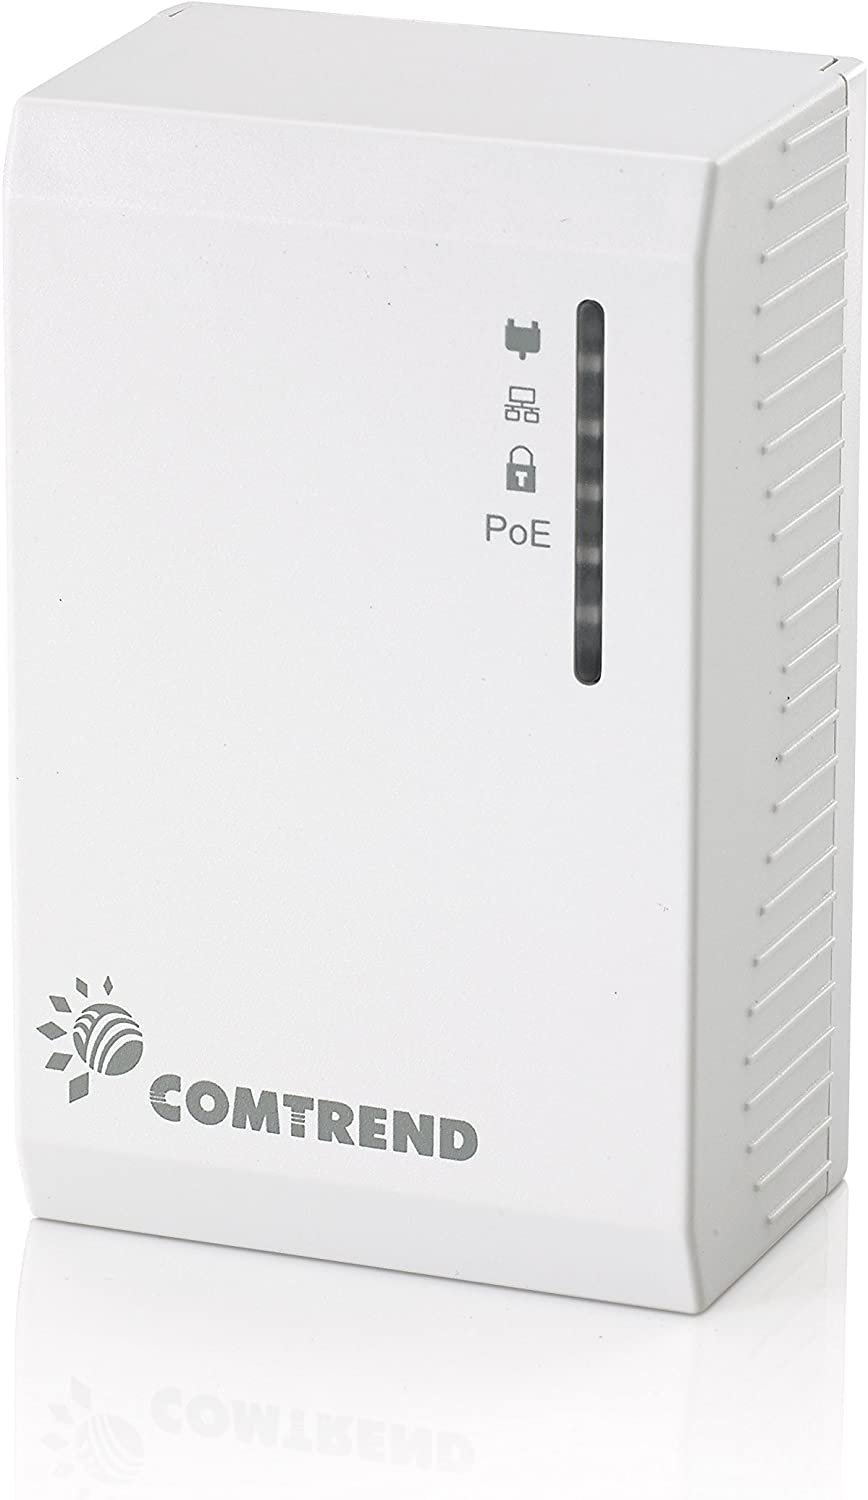 Comtrend G.hn 1200 Mbps Powerline Ethernet Bridge Adapter with Power Over Ethernet POE PG-9172PoE Single Unit (2-units required)